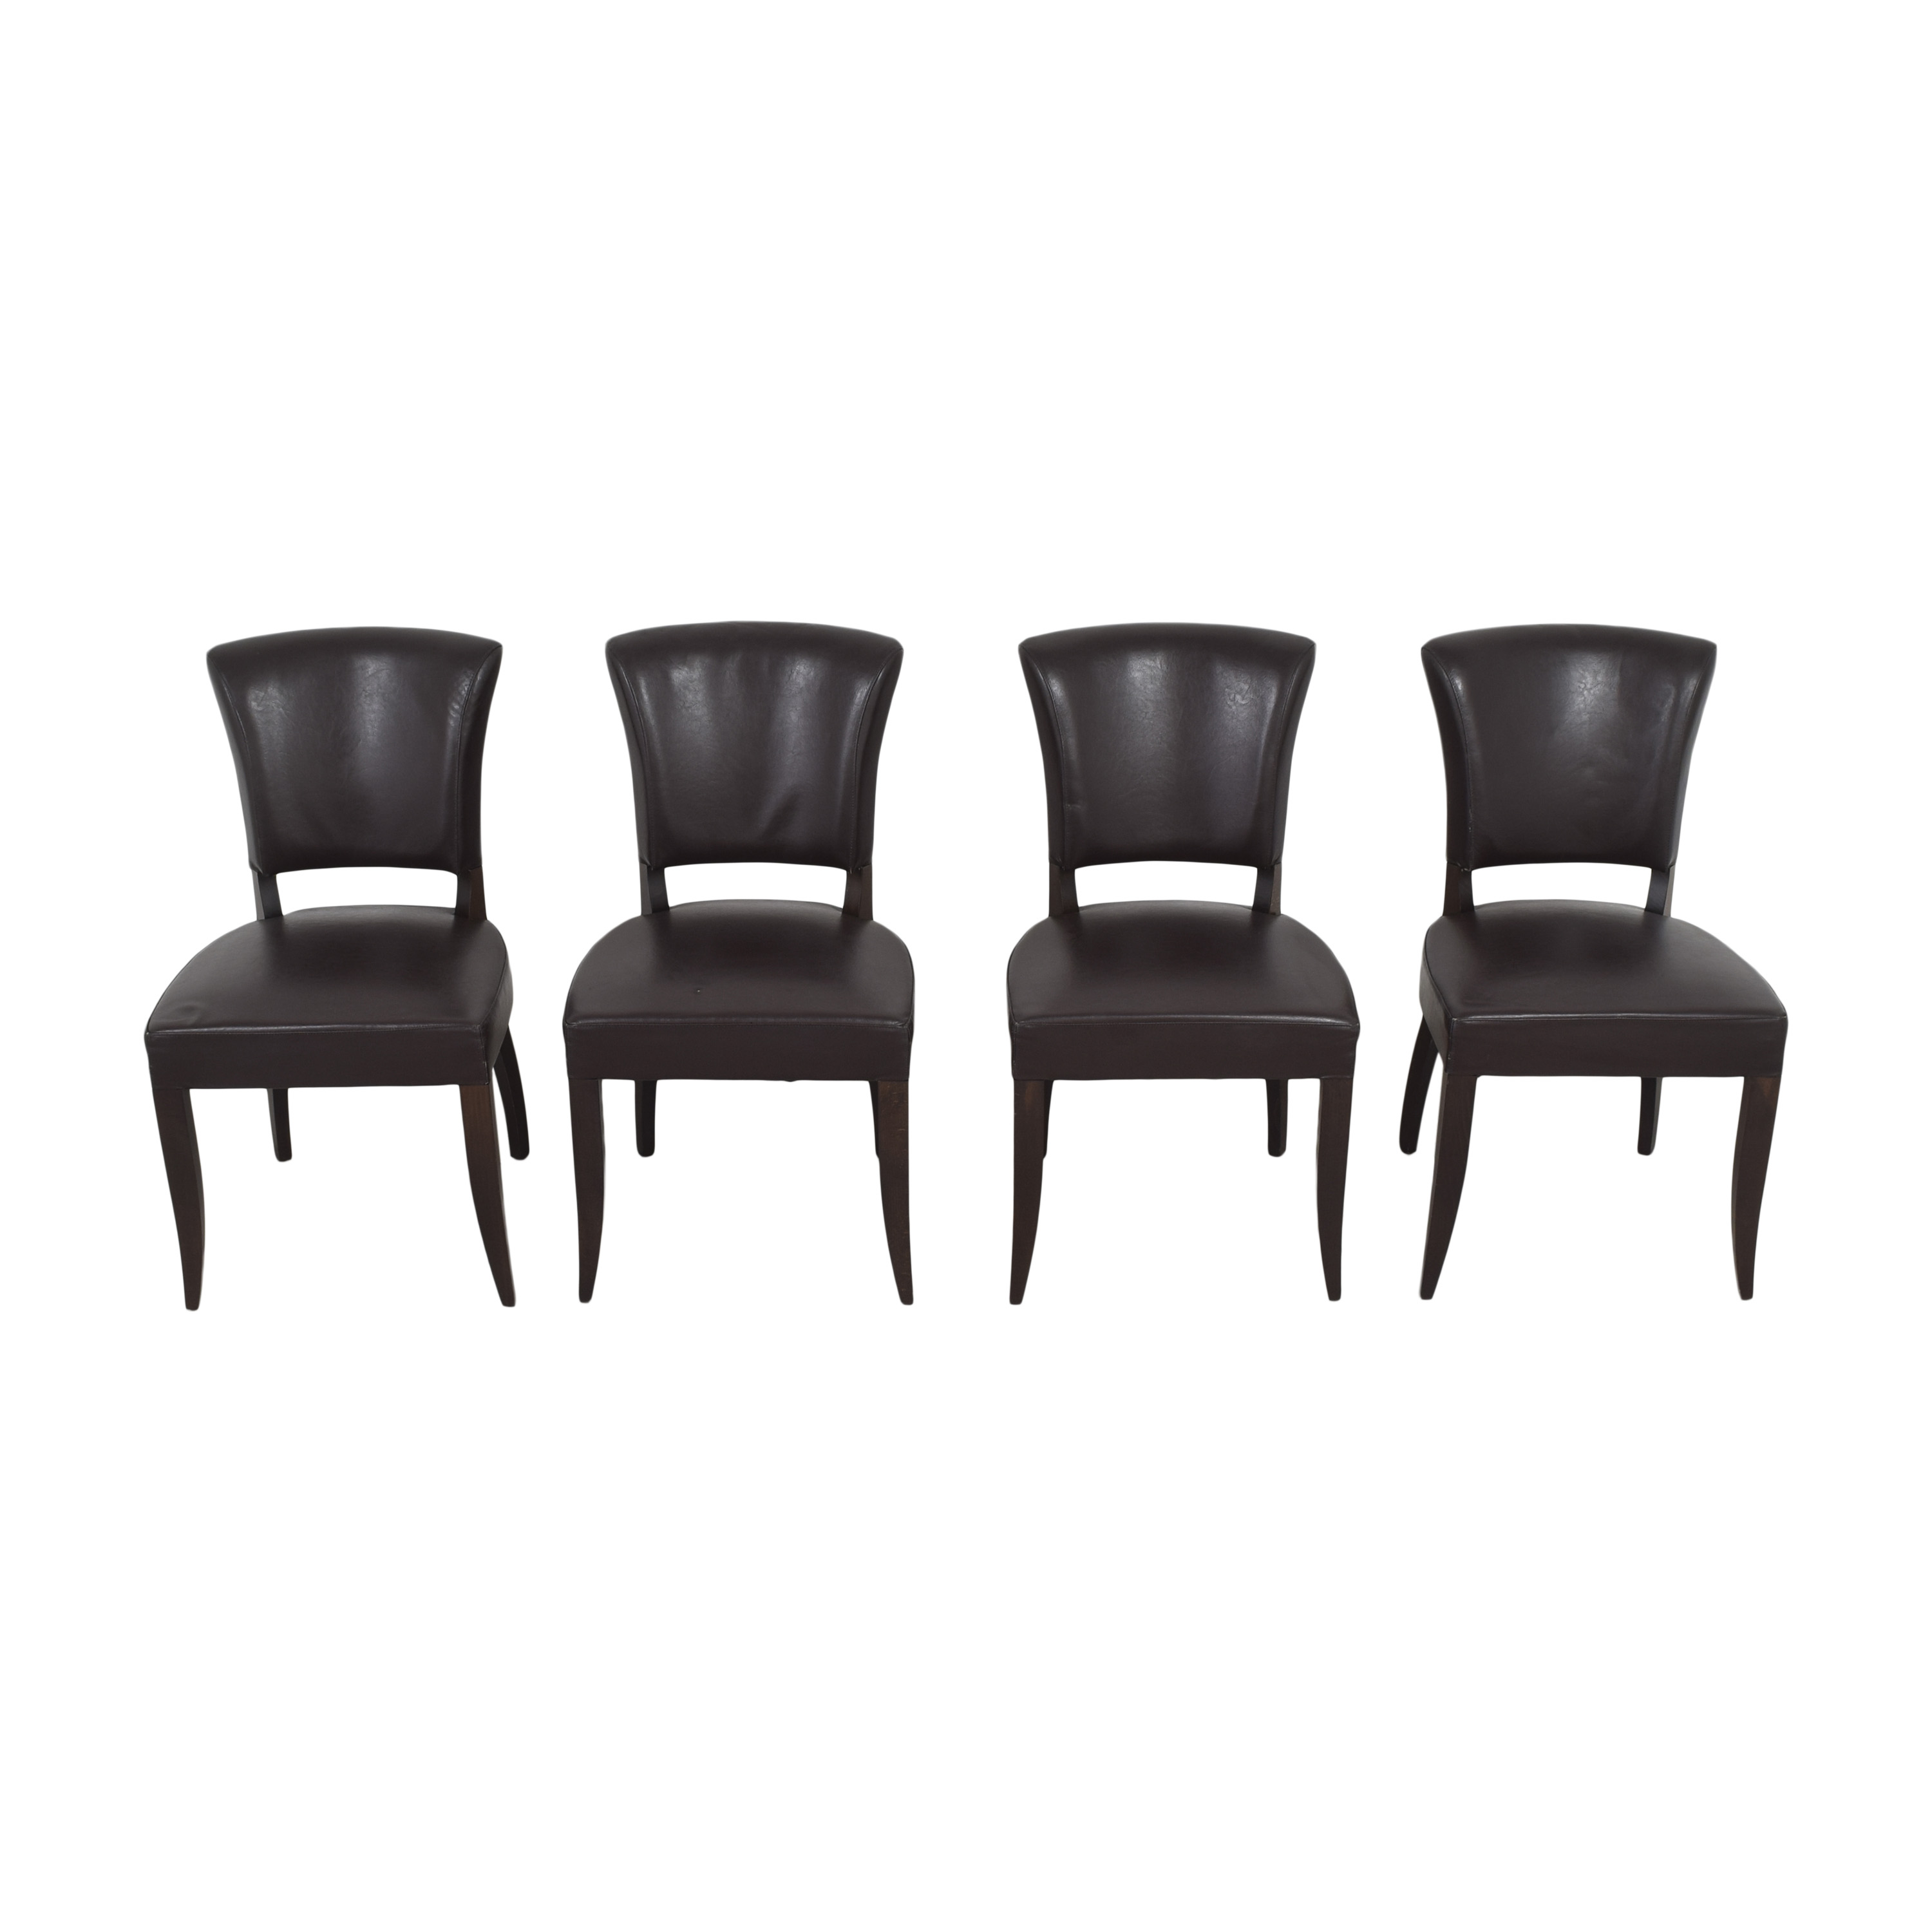 buy Crate & Barrel Side Dining Chairs Crate & Barrel Dining Chairs